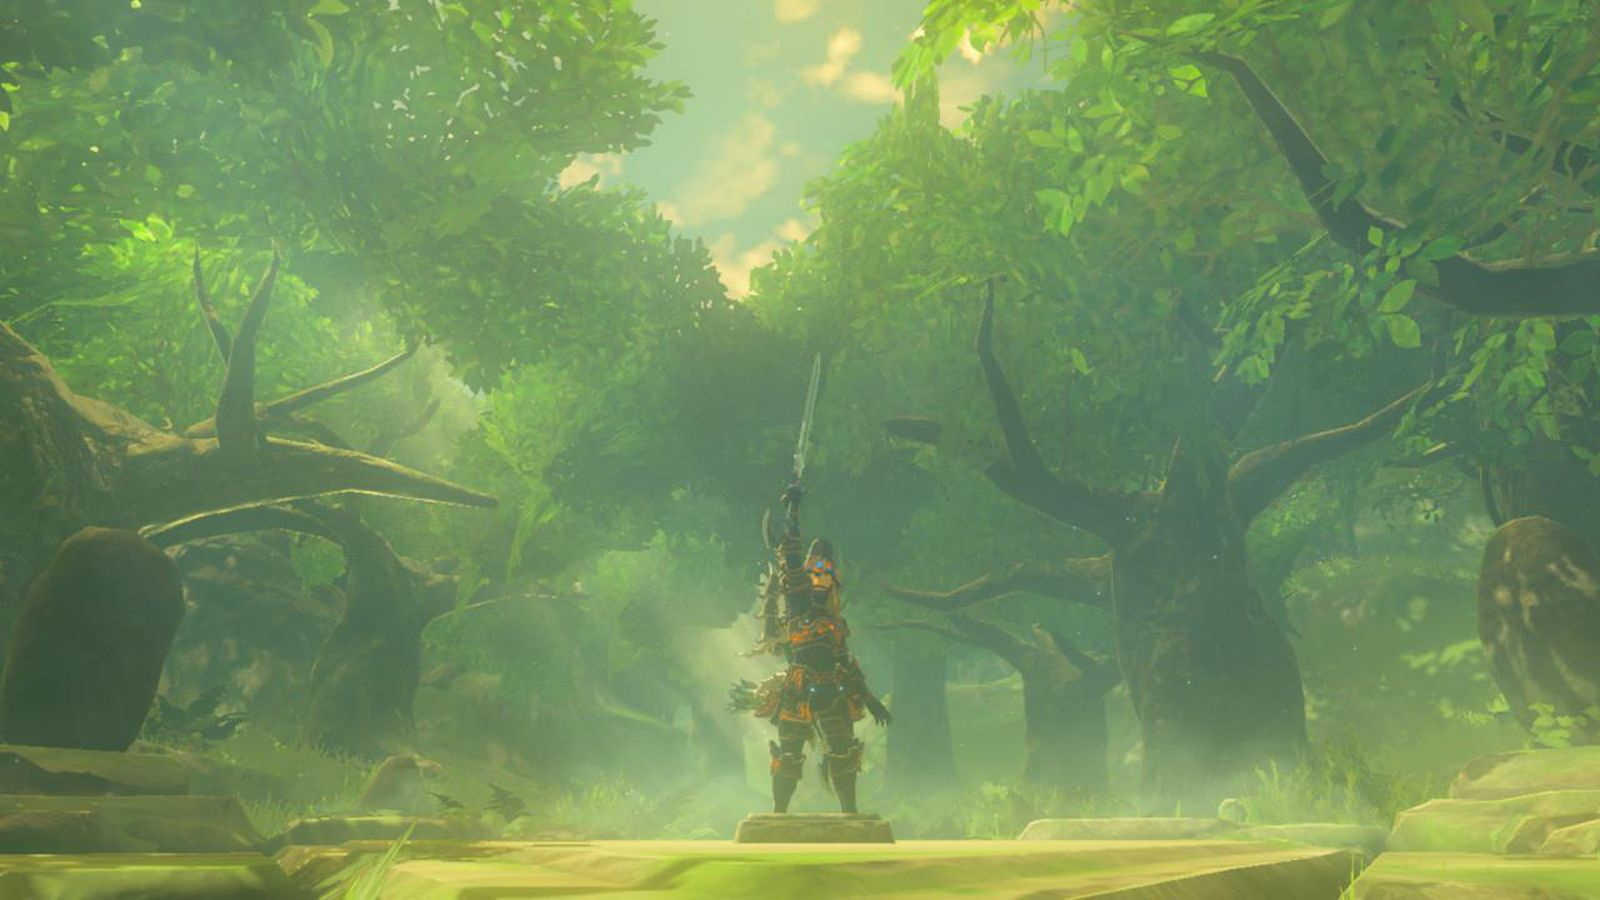 Zelda Hd Wallpaper Zelda Breath Of The Wild Is Playable At 4k On The Pc